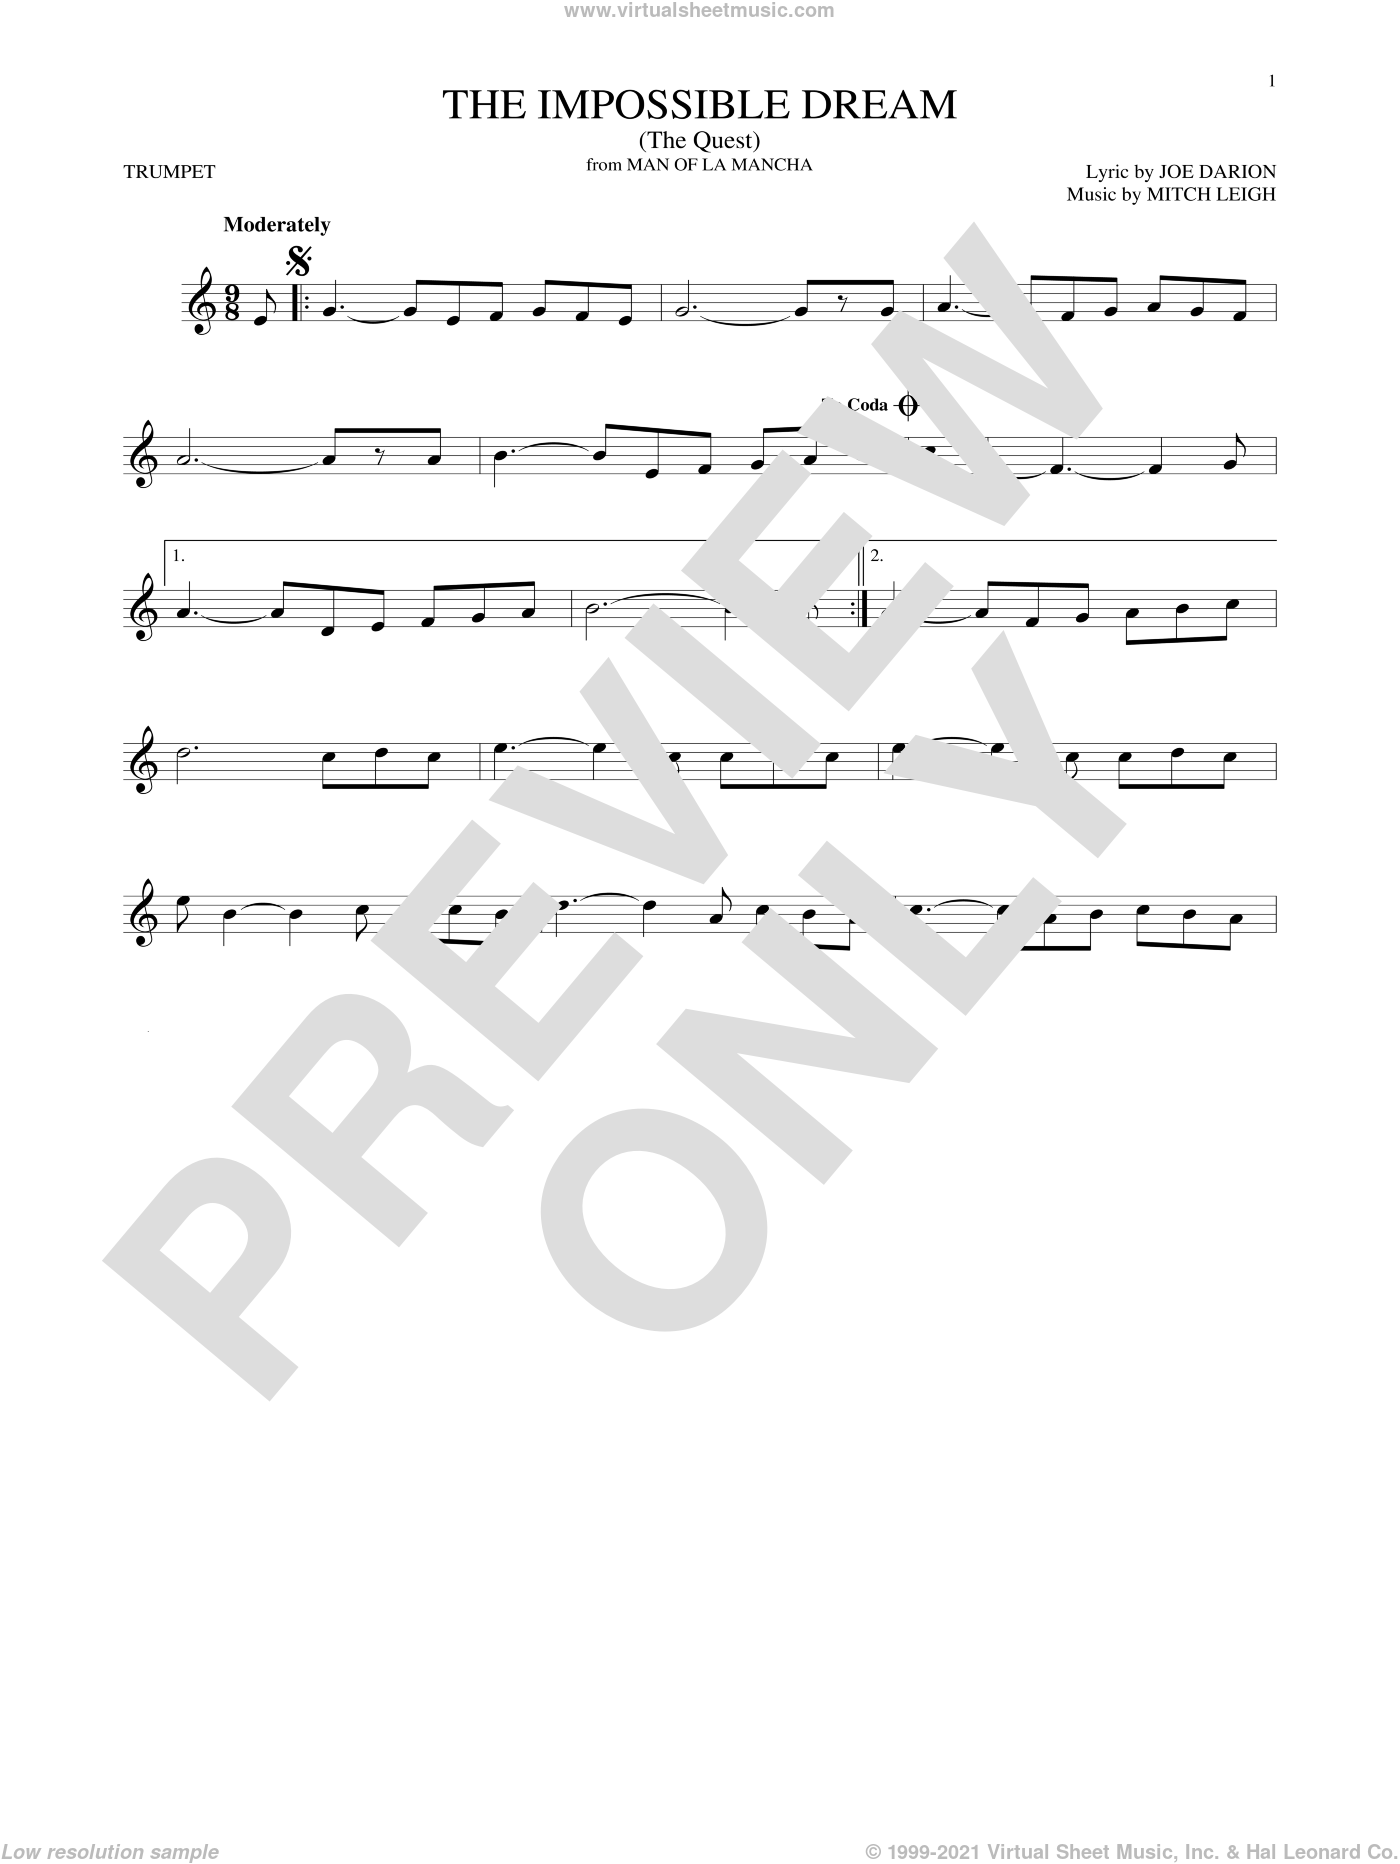 The Impossible Dream (The Quest) sheet music for trumpet solo by Joe Darion and Mitch Leigh, intermediate skill level